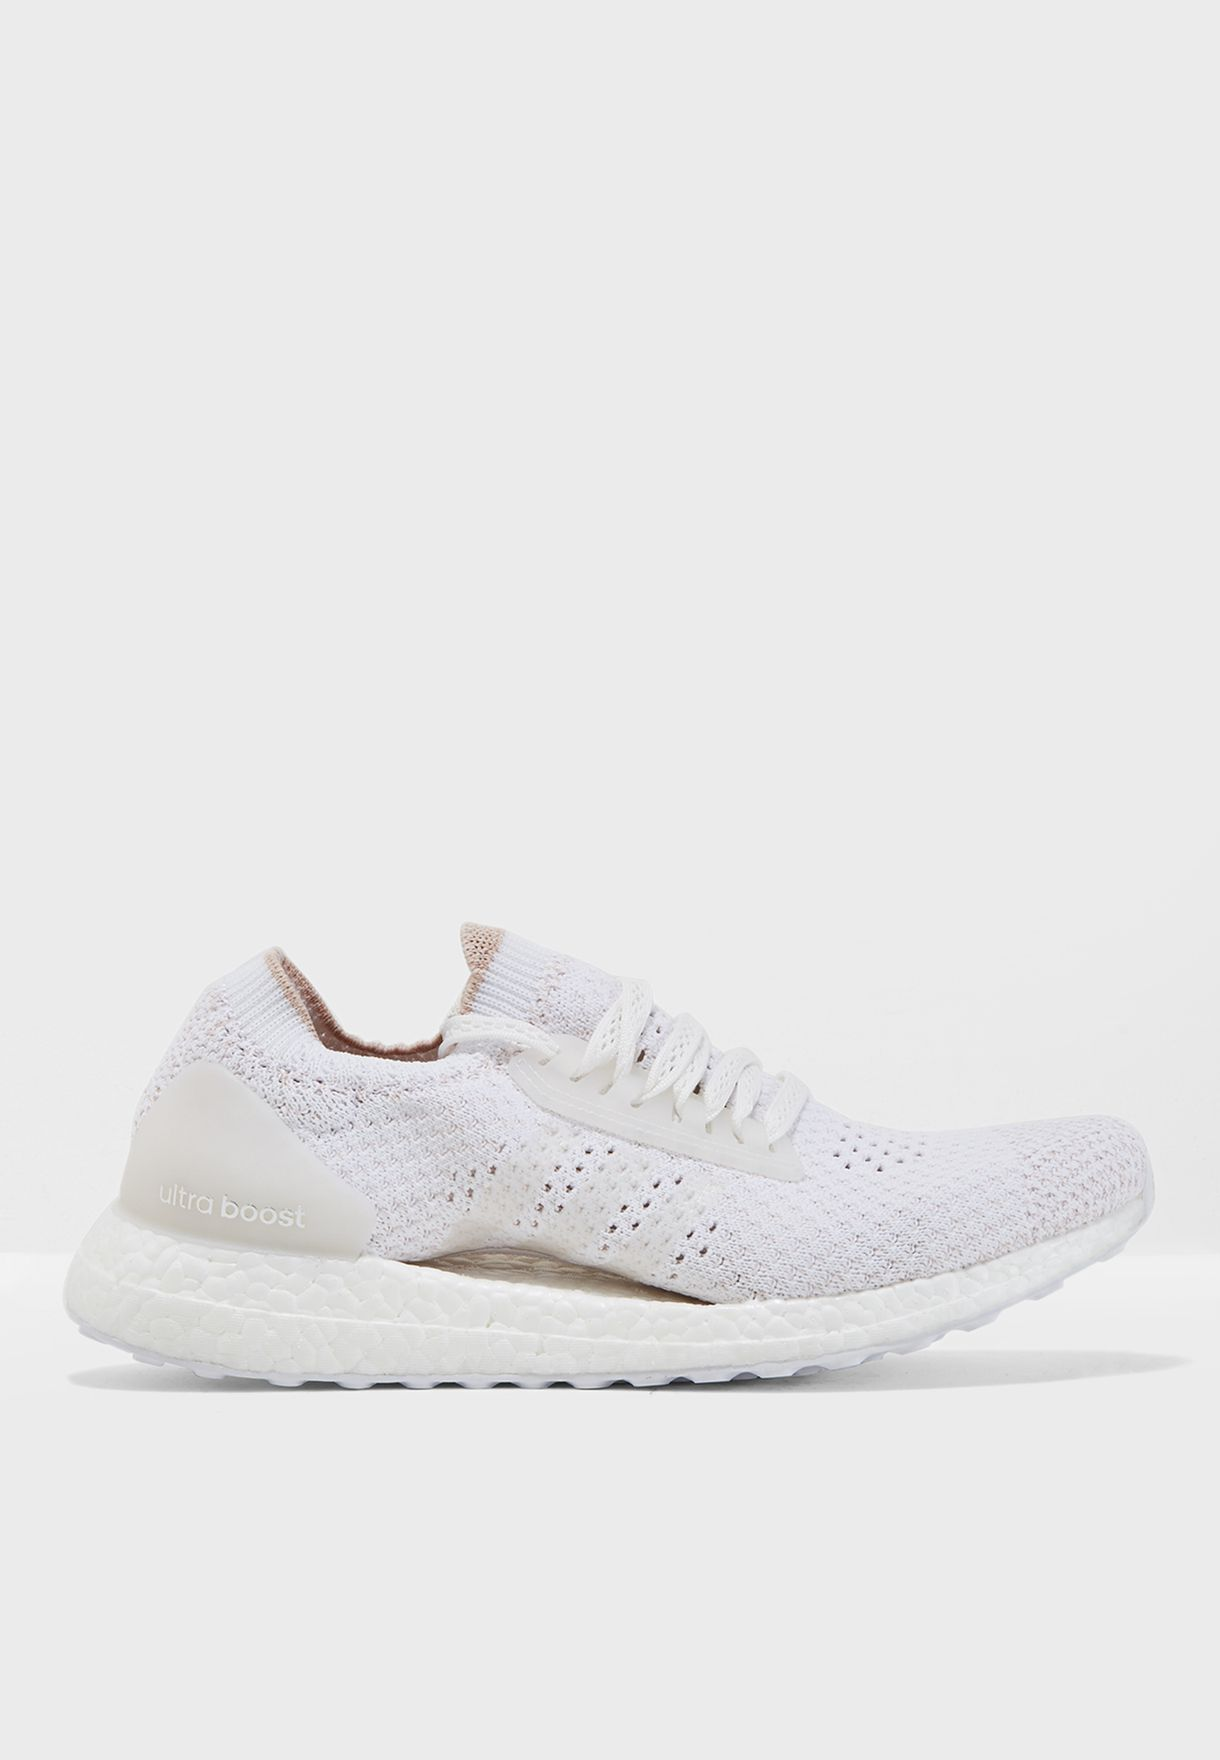 8432d8915d15 Shop adidas white Ultraboost X Clima CG3946 for Women in Saudi ...